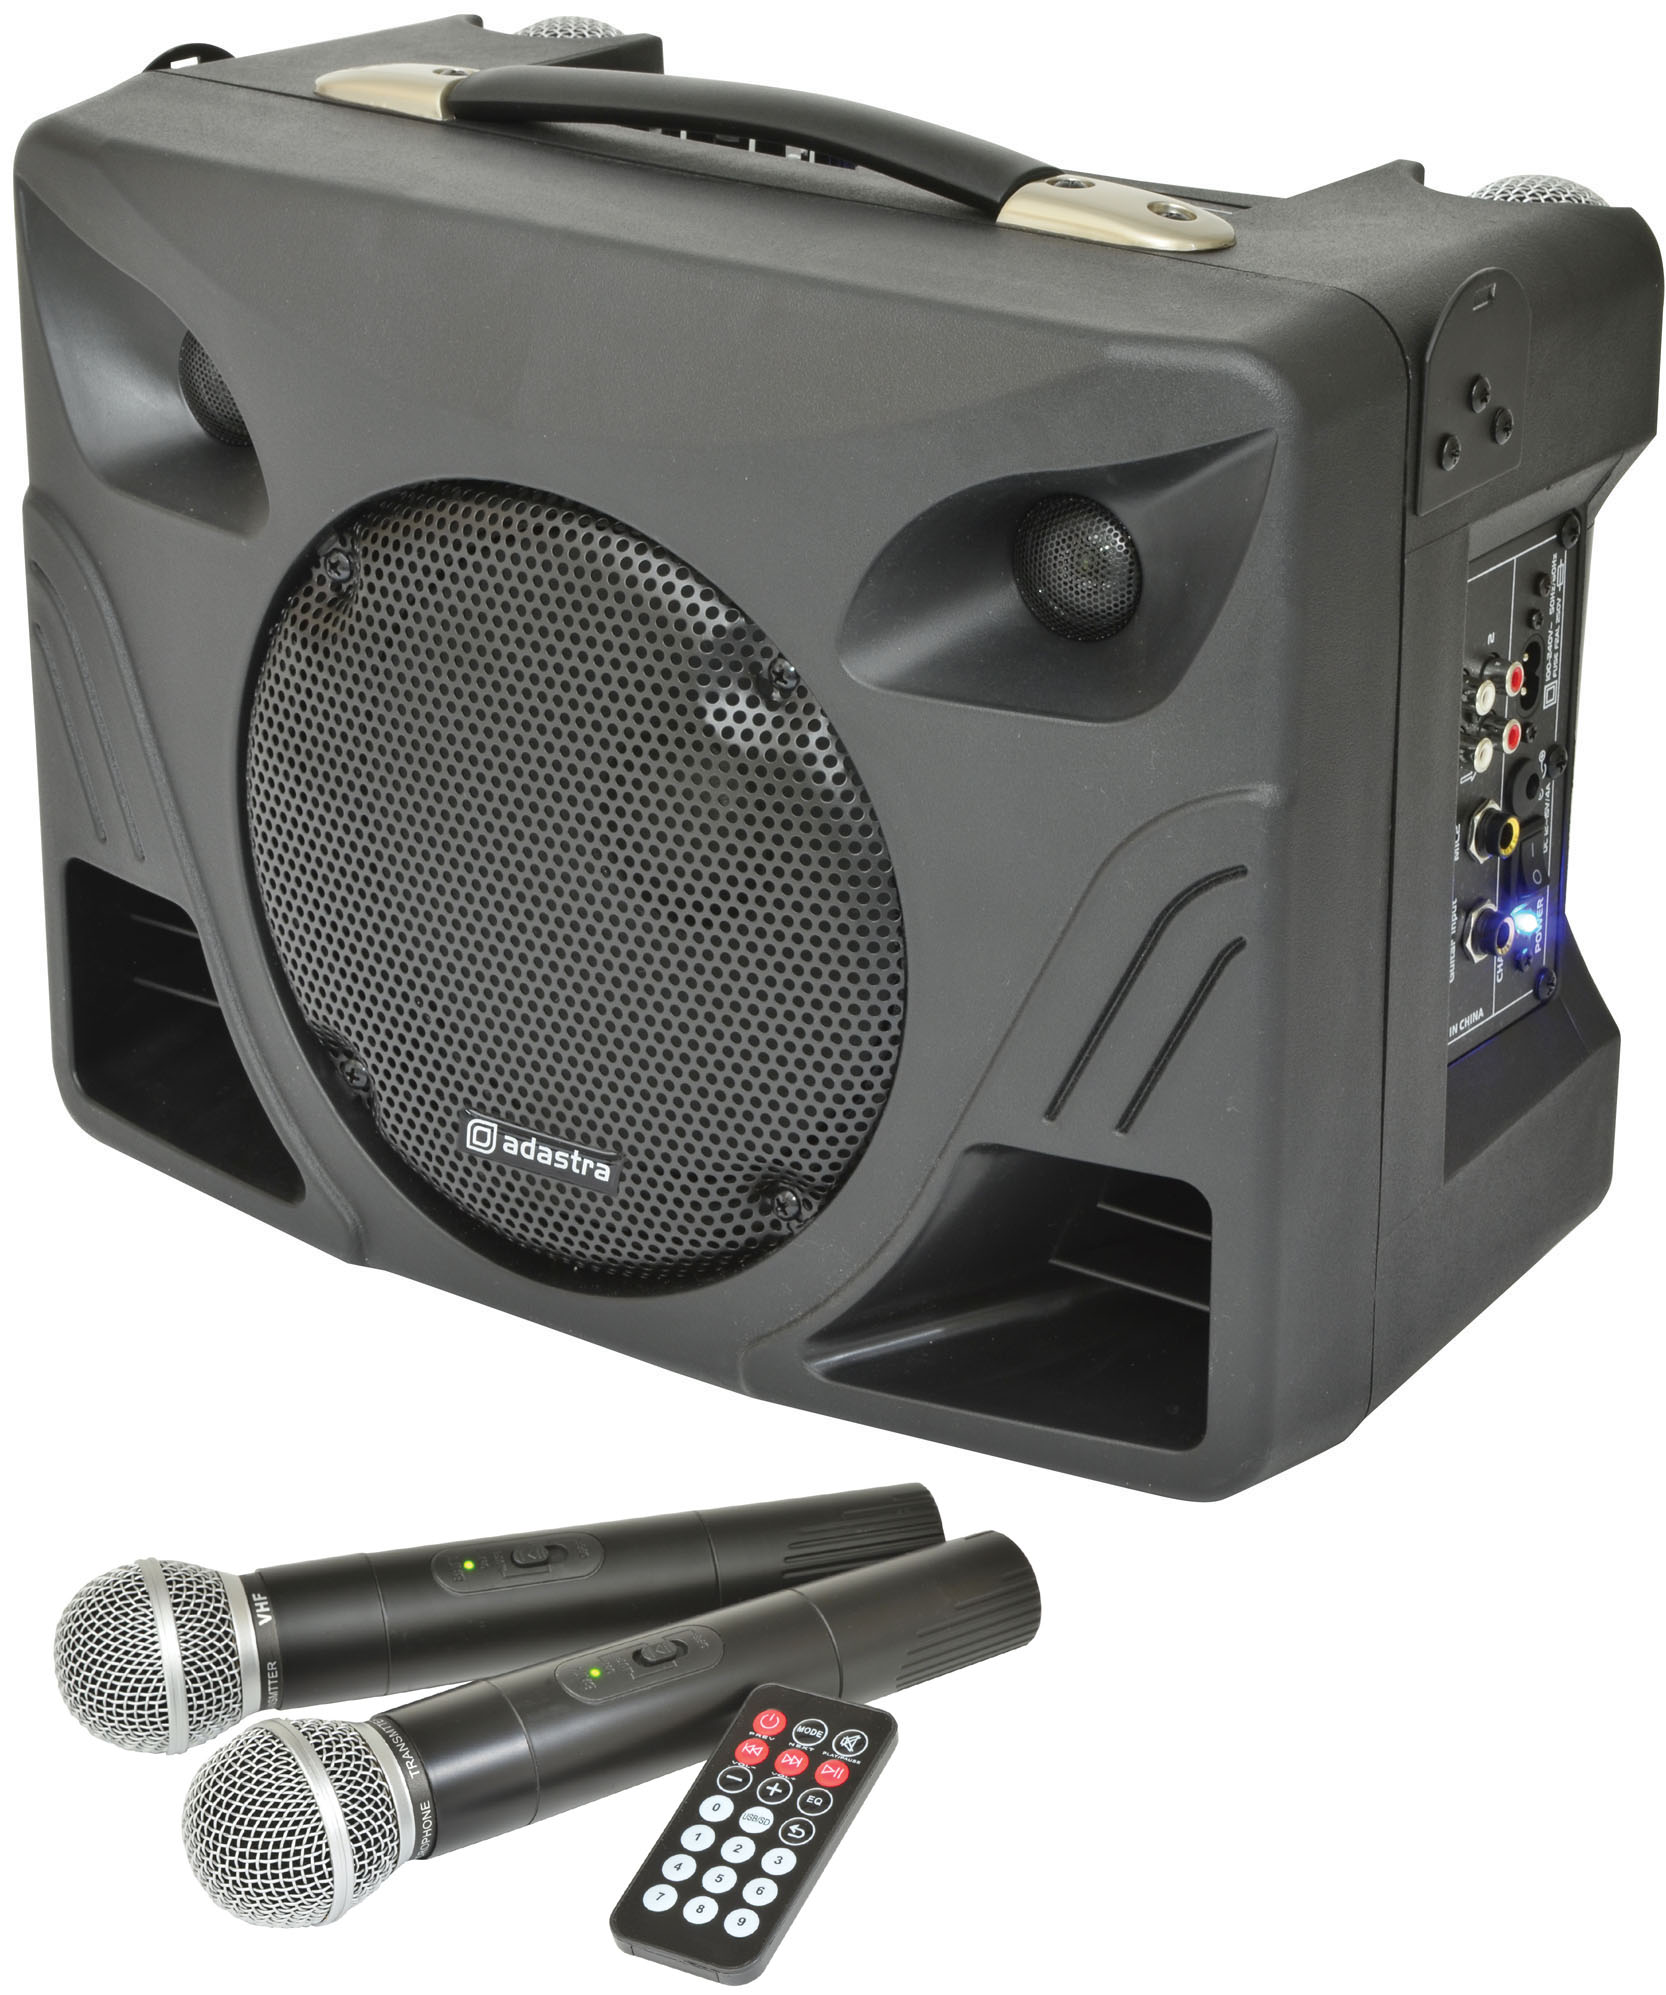 adastra dt50 50w portable pa system with 2 wireless microphones astounded. Black Bedroom Furniture Sets. Home Design Ideas